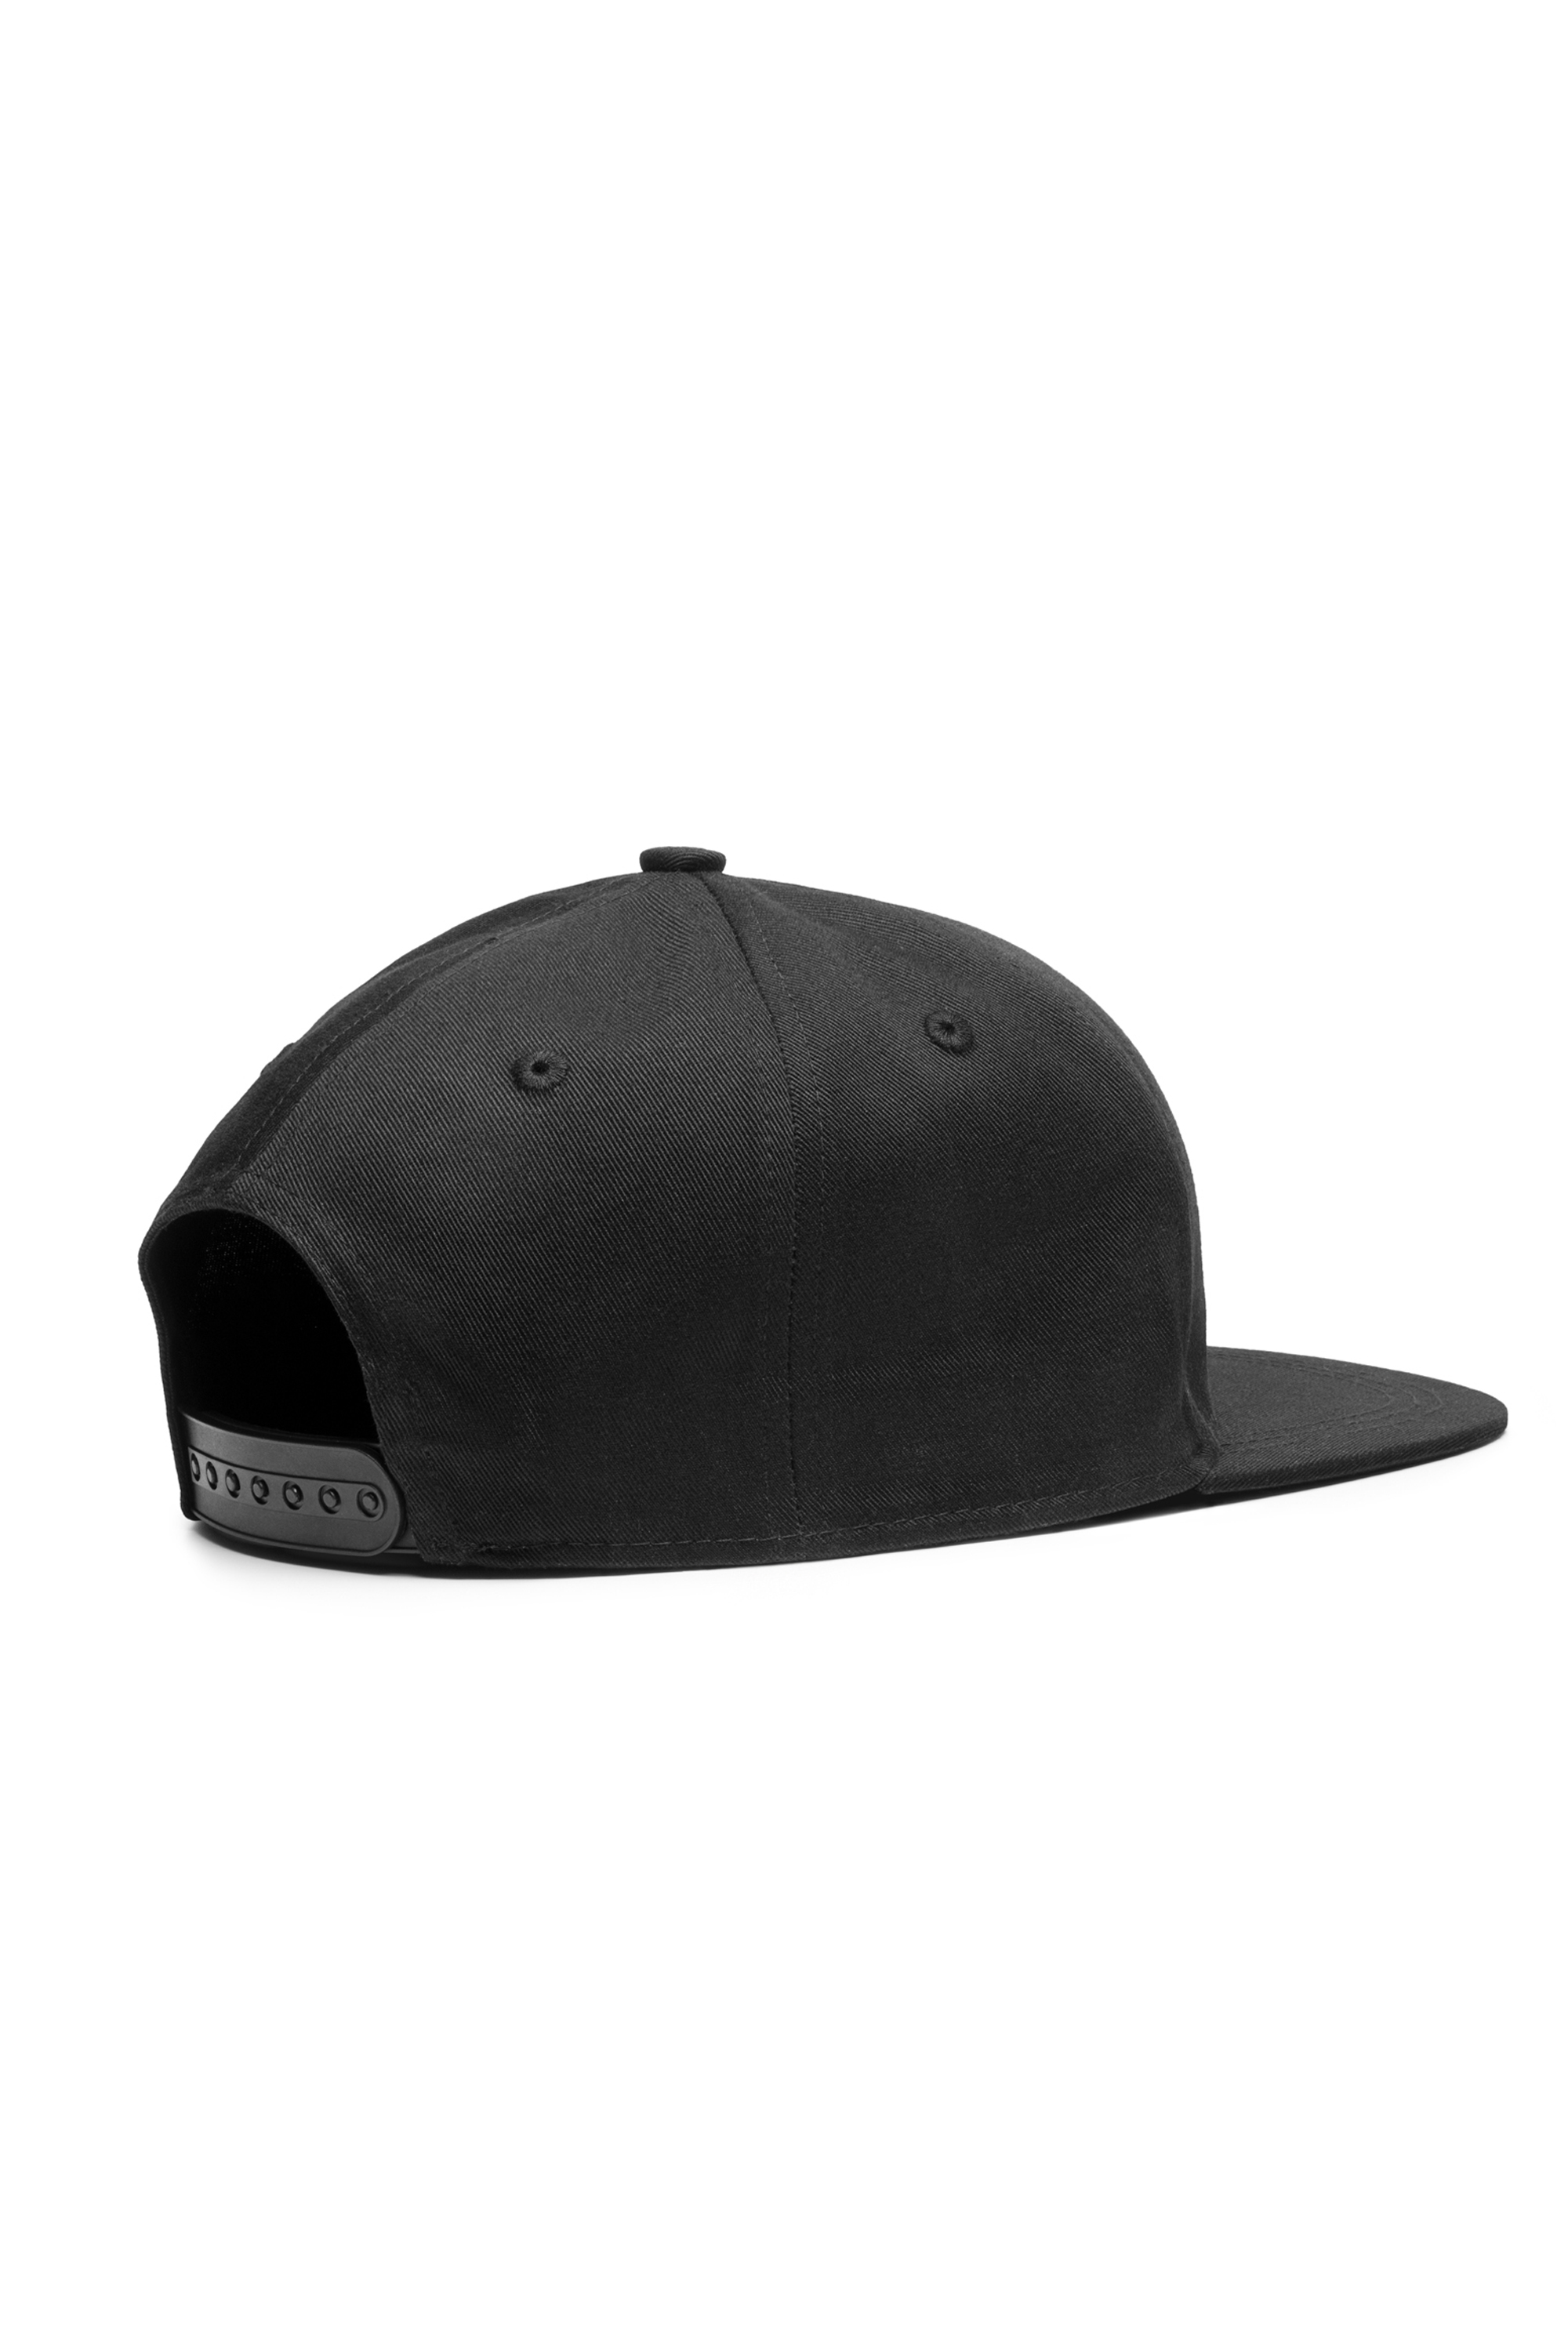 All We Know Snapback